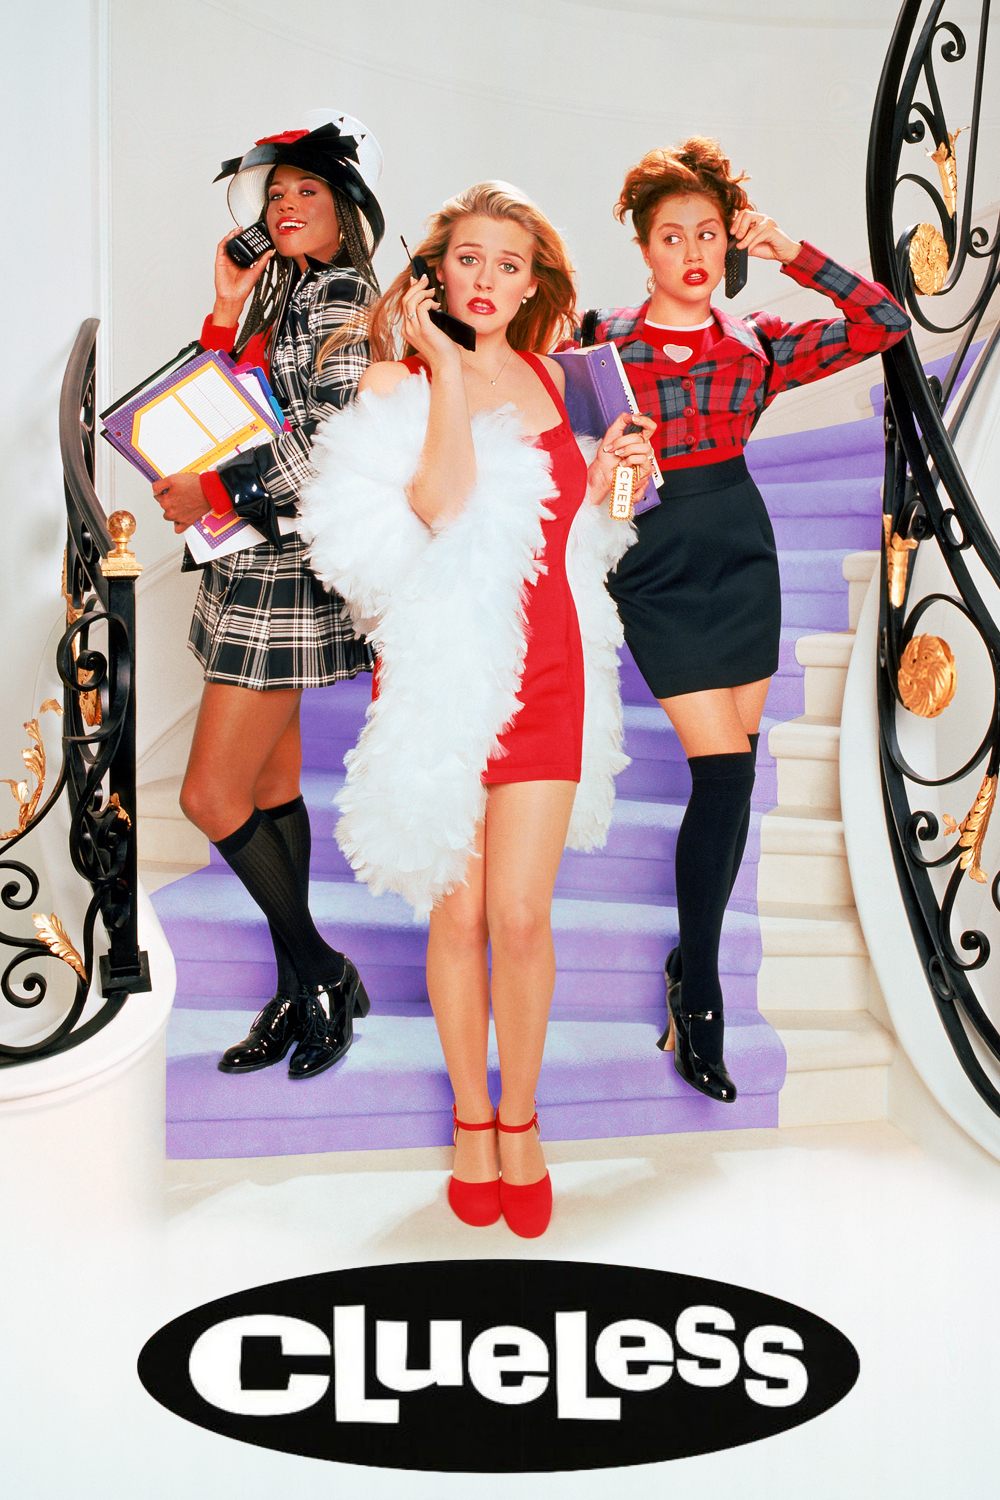 Poster for Clueless at Second Best!